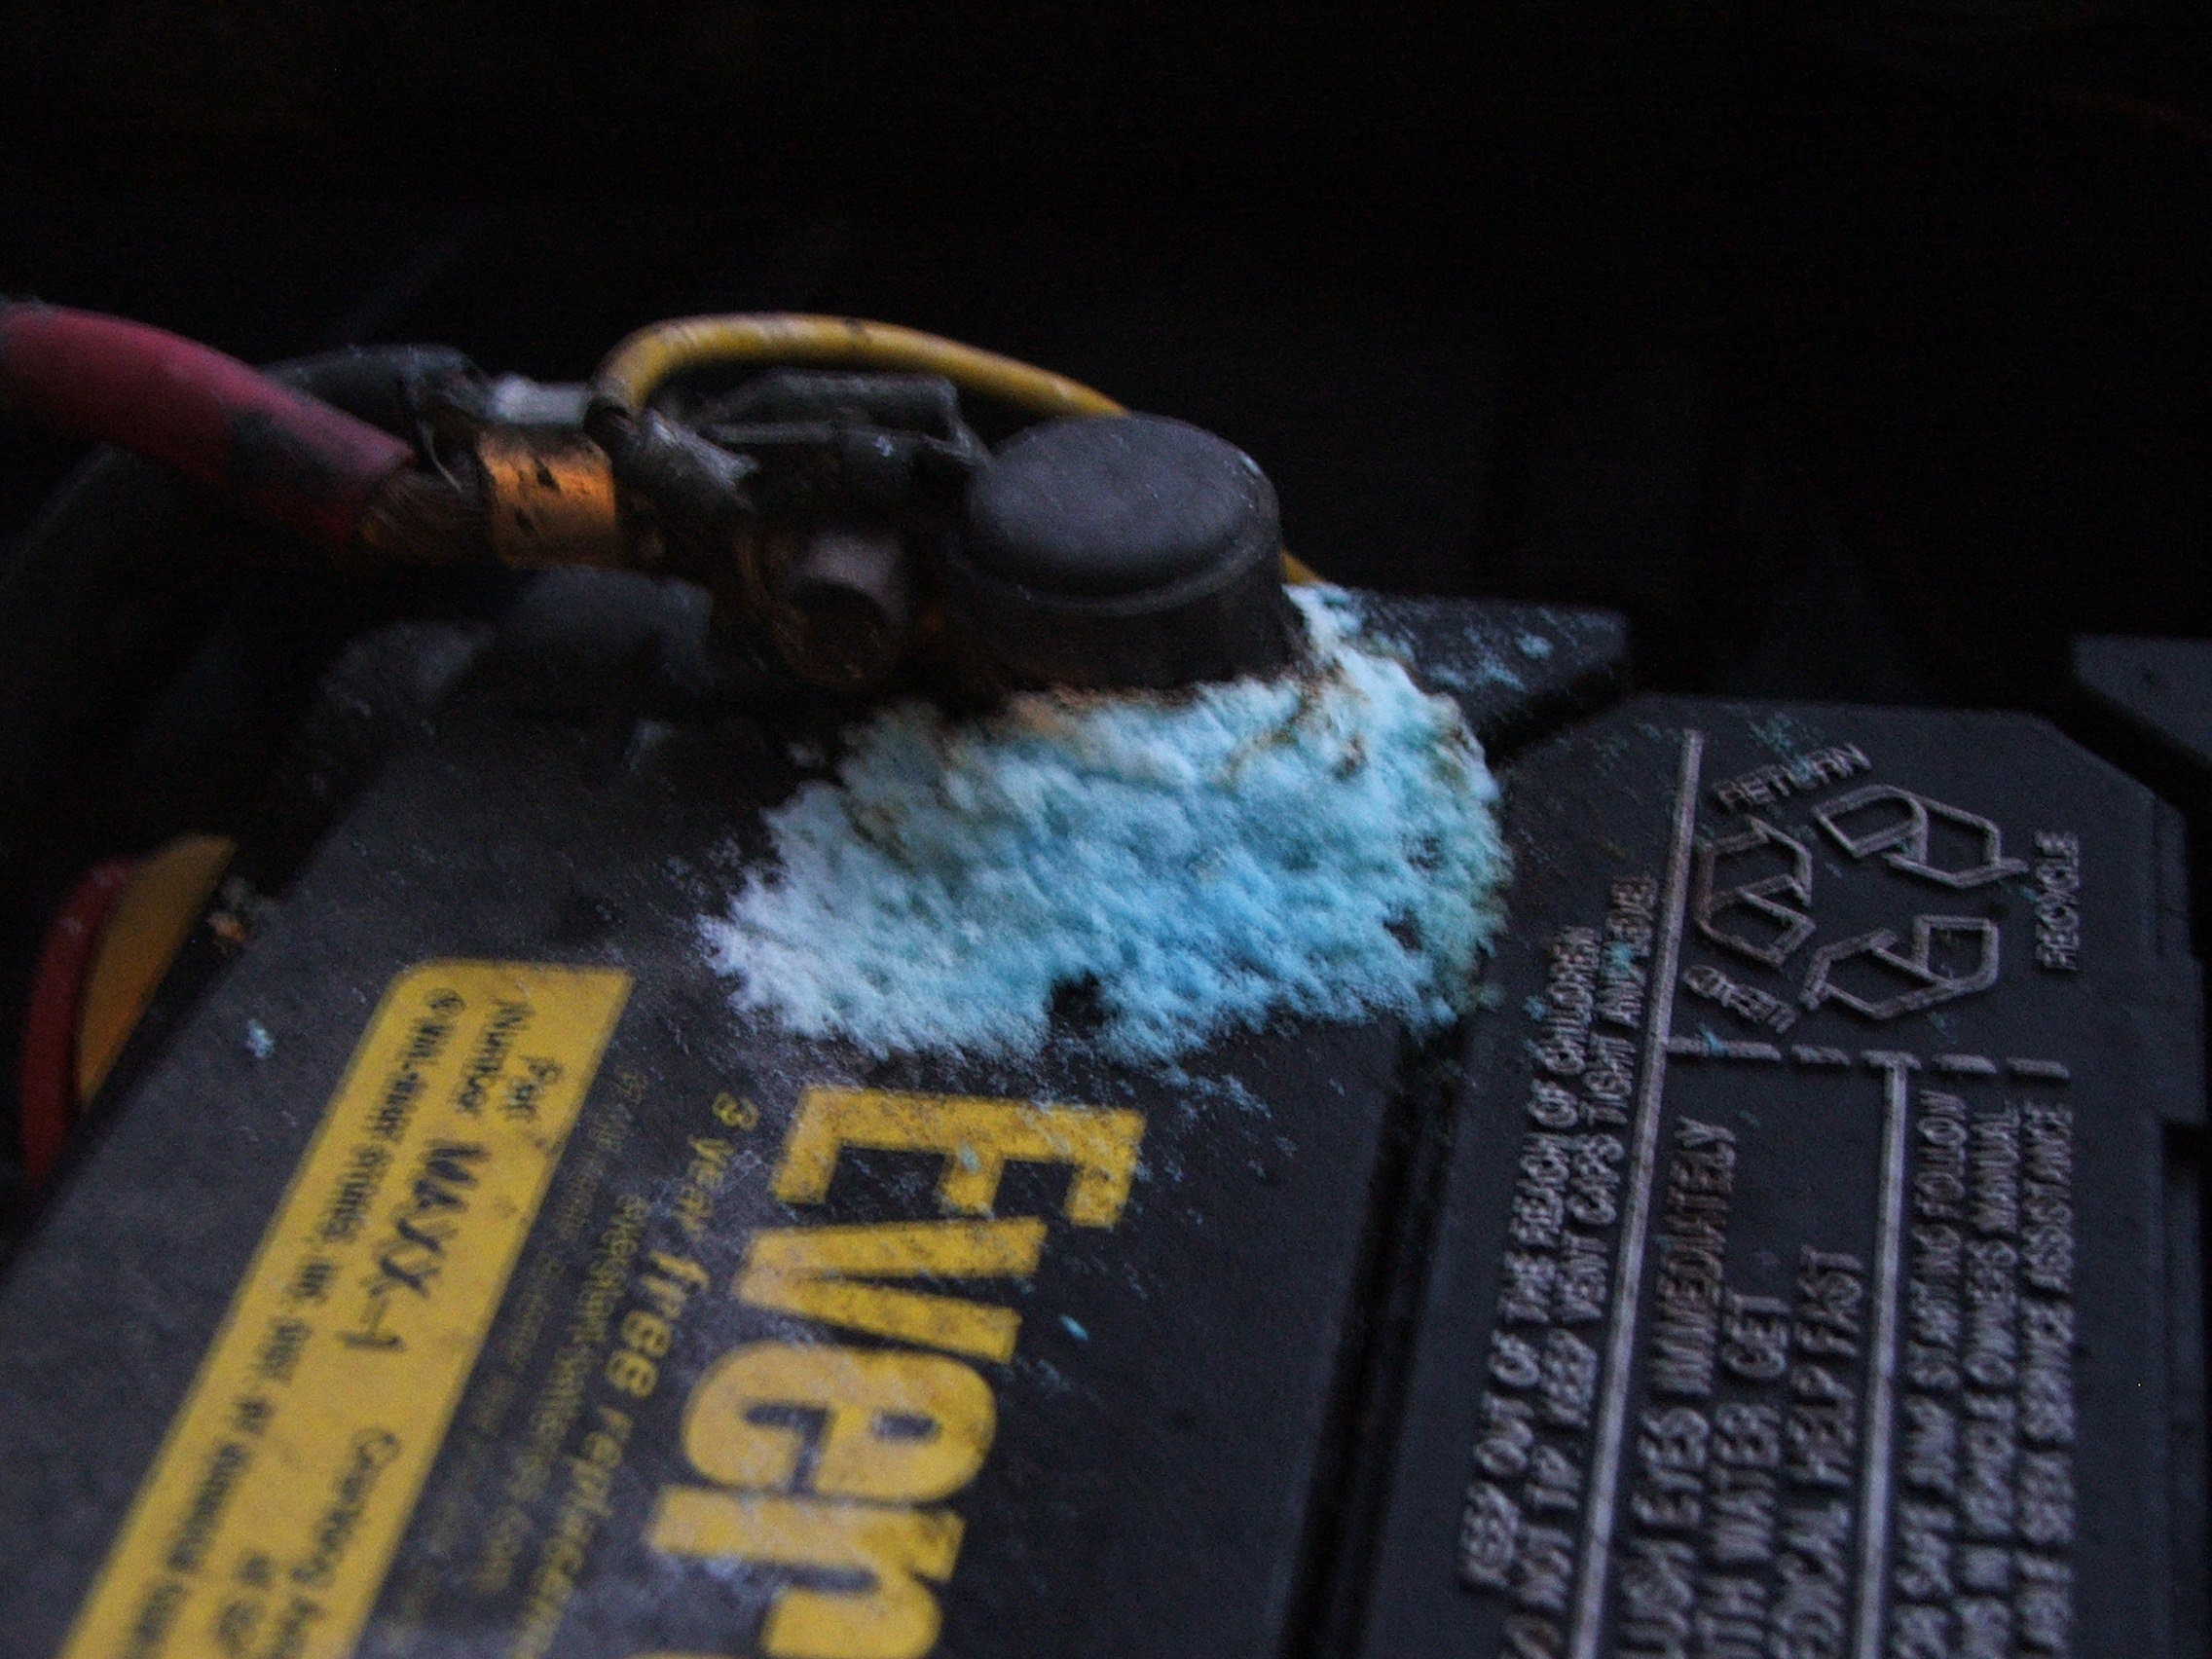 Car batter showing corrosion a terminal with severe corrosion